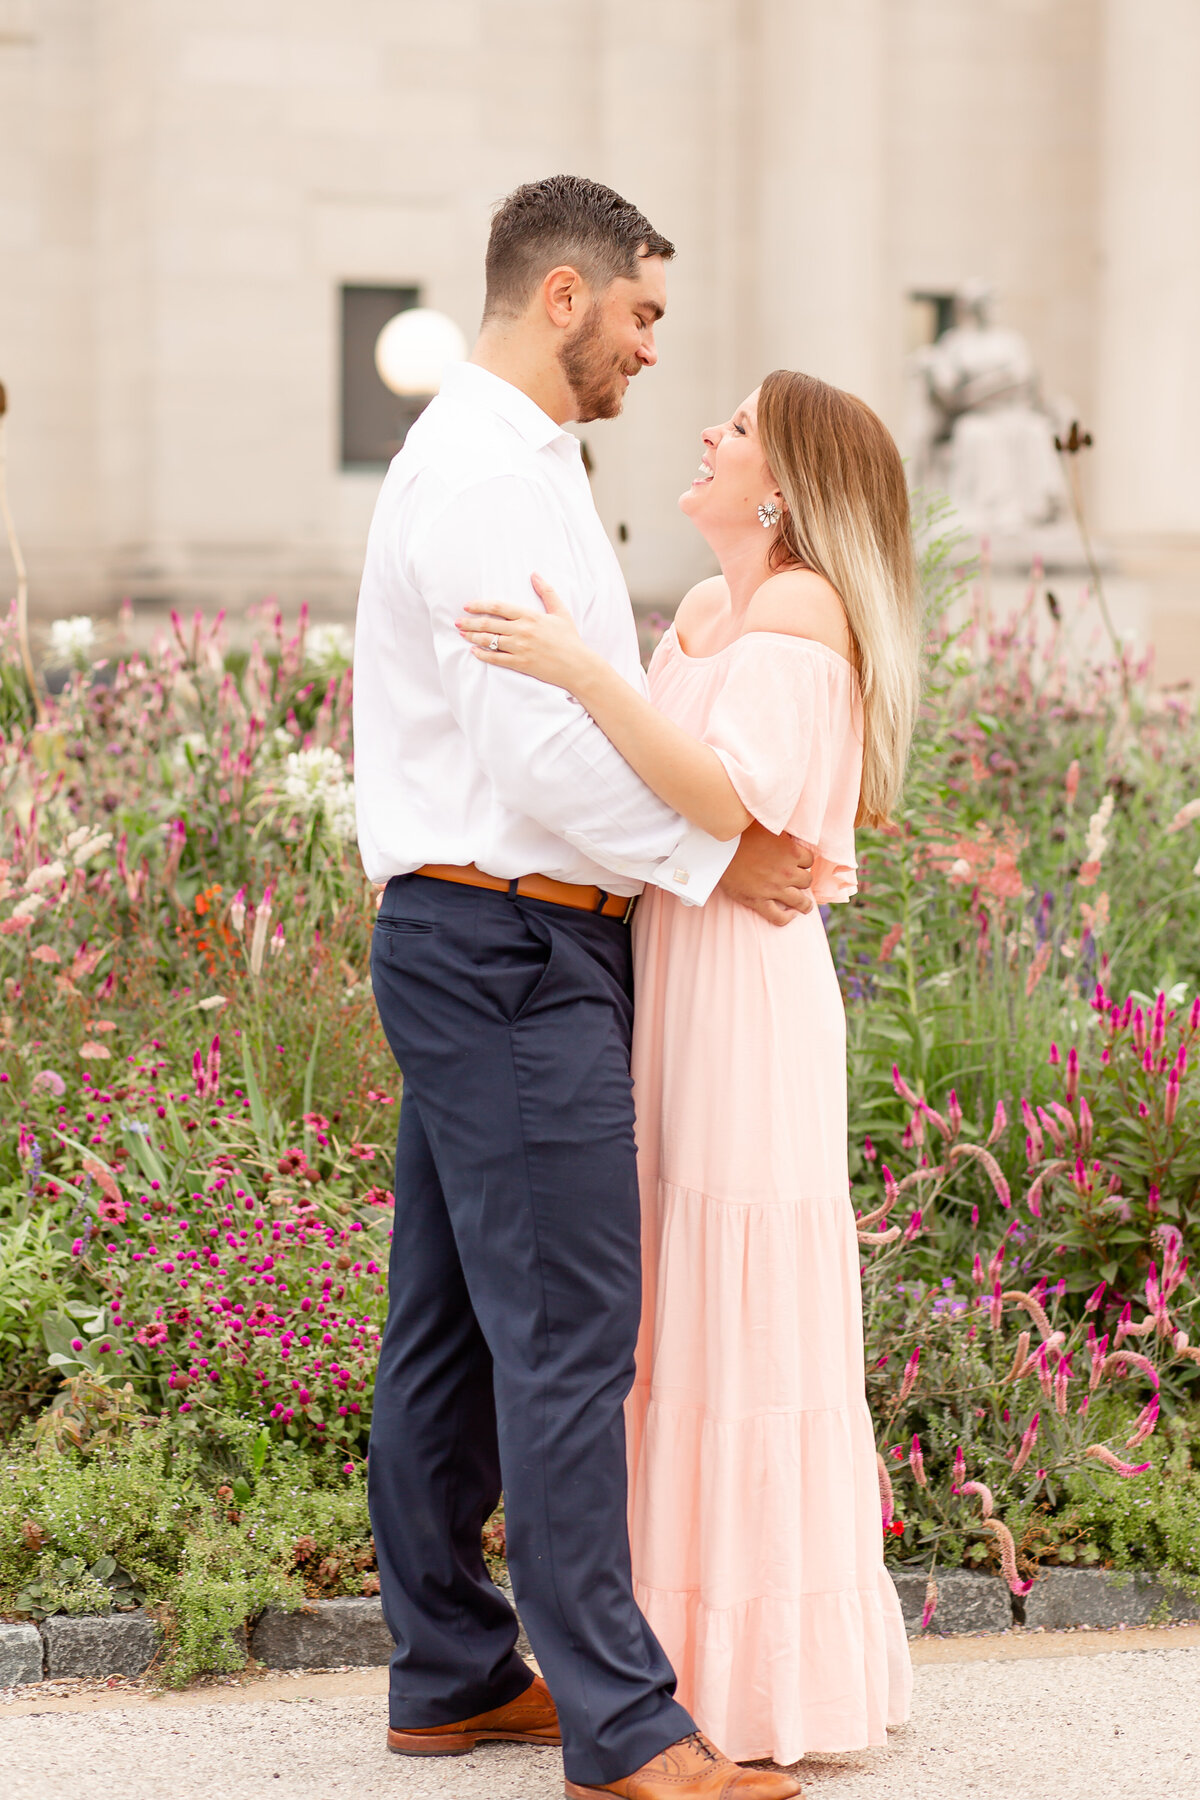 Summer Sunset Engagement Session with pink off the shoulder dress couple laughing by wildflowers at St. Louis Art Museum in Forest Park in St. Louis by Amy Britton Photography Photographer in St. Louis